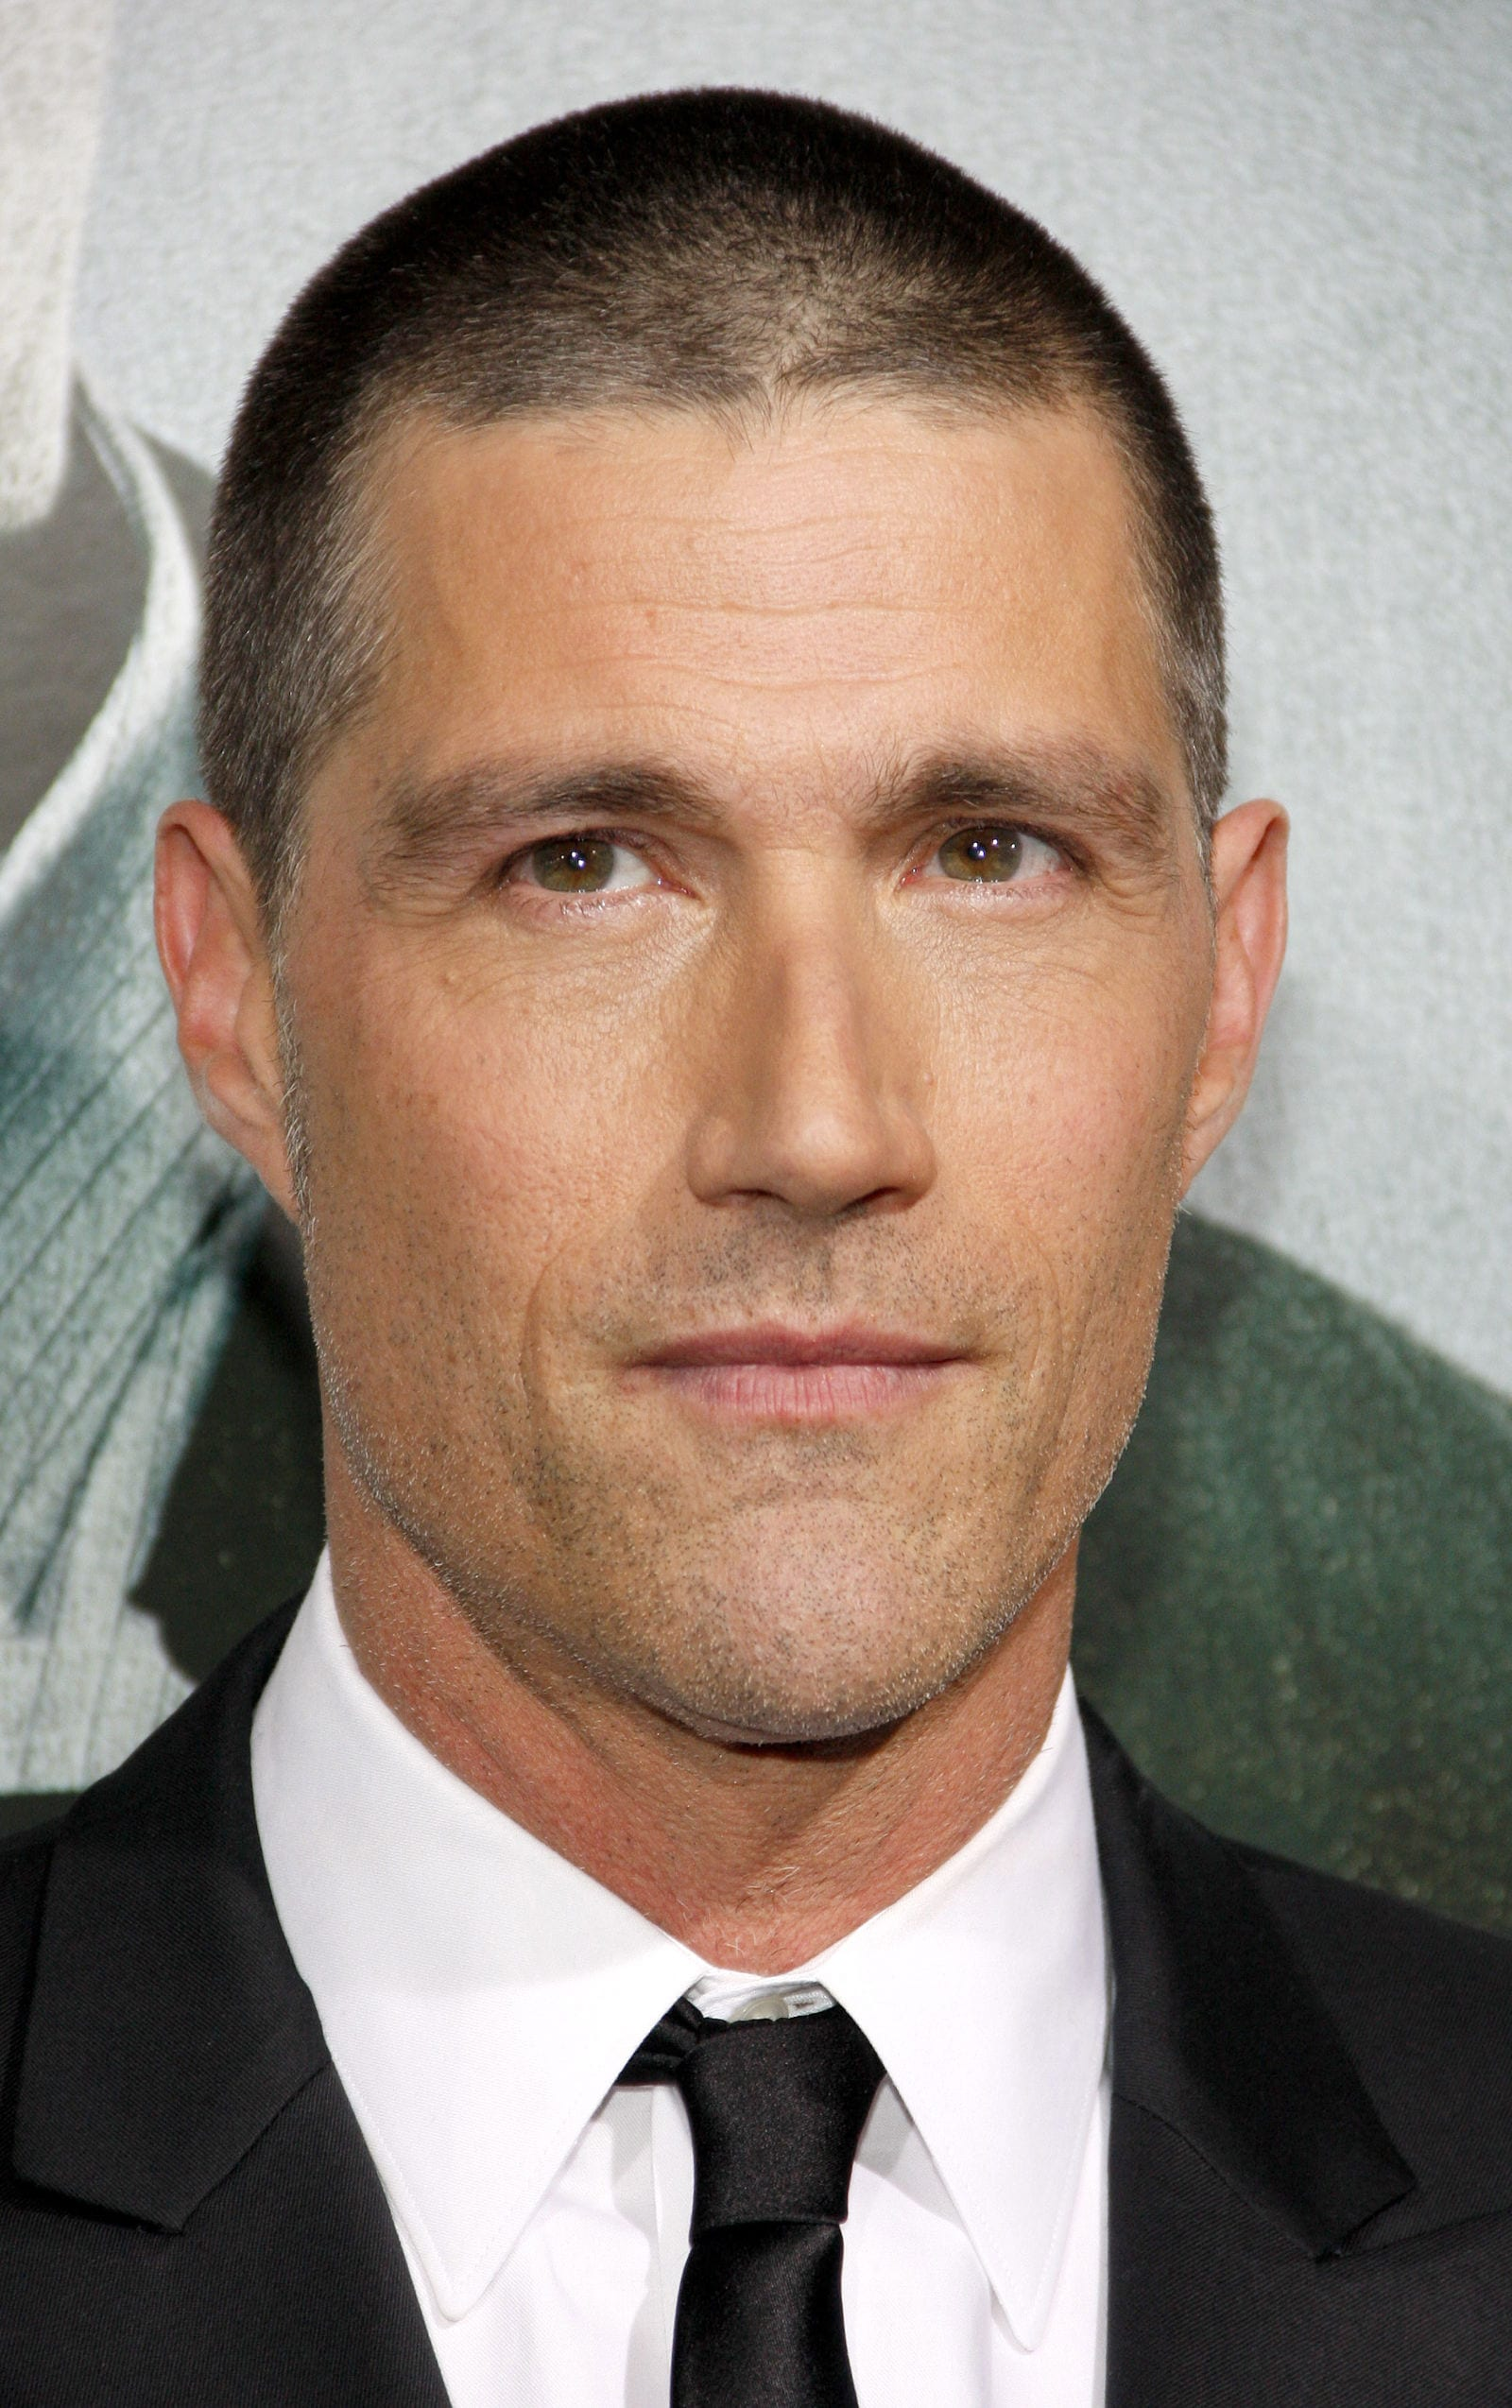 Matthew Fox butch cut